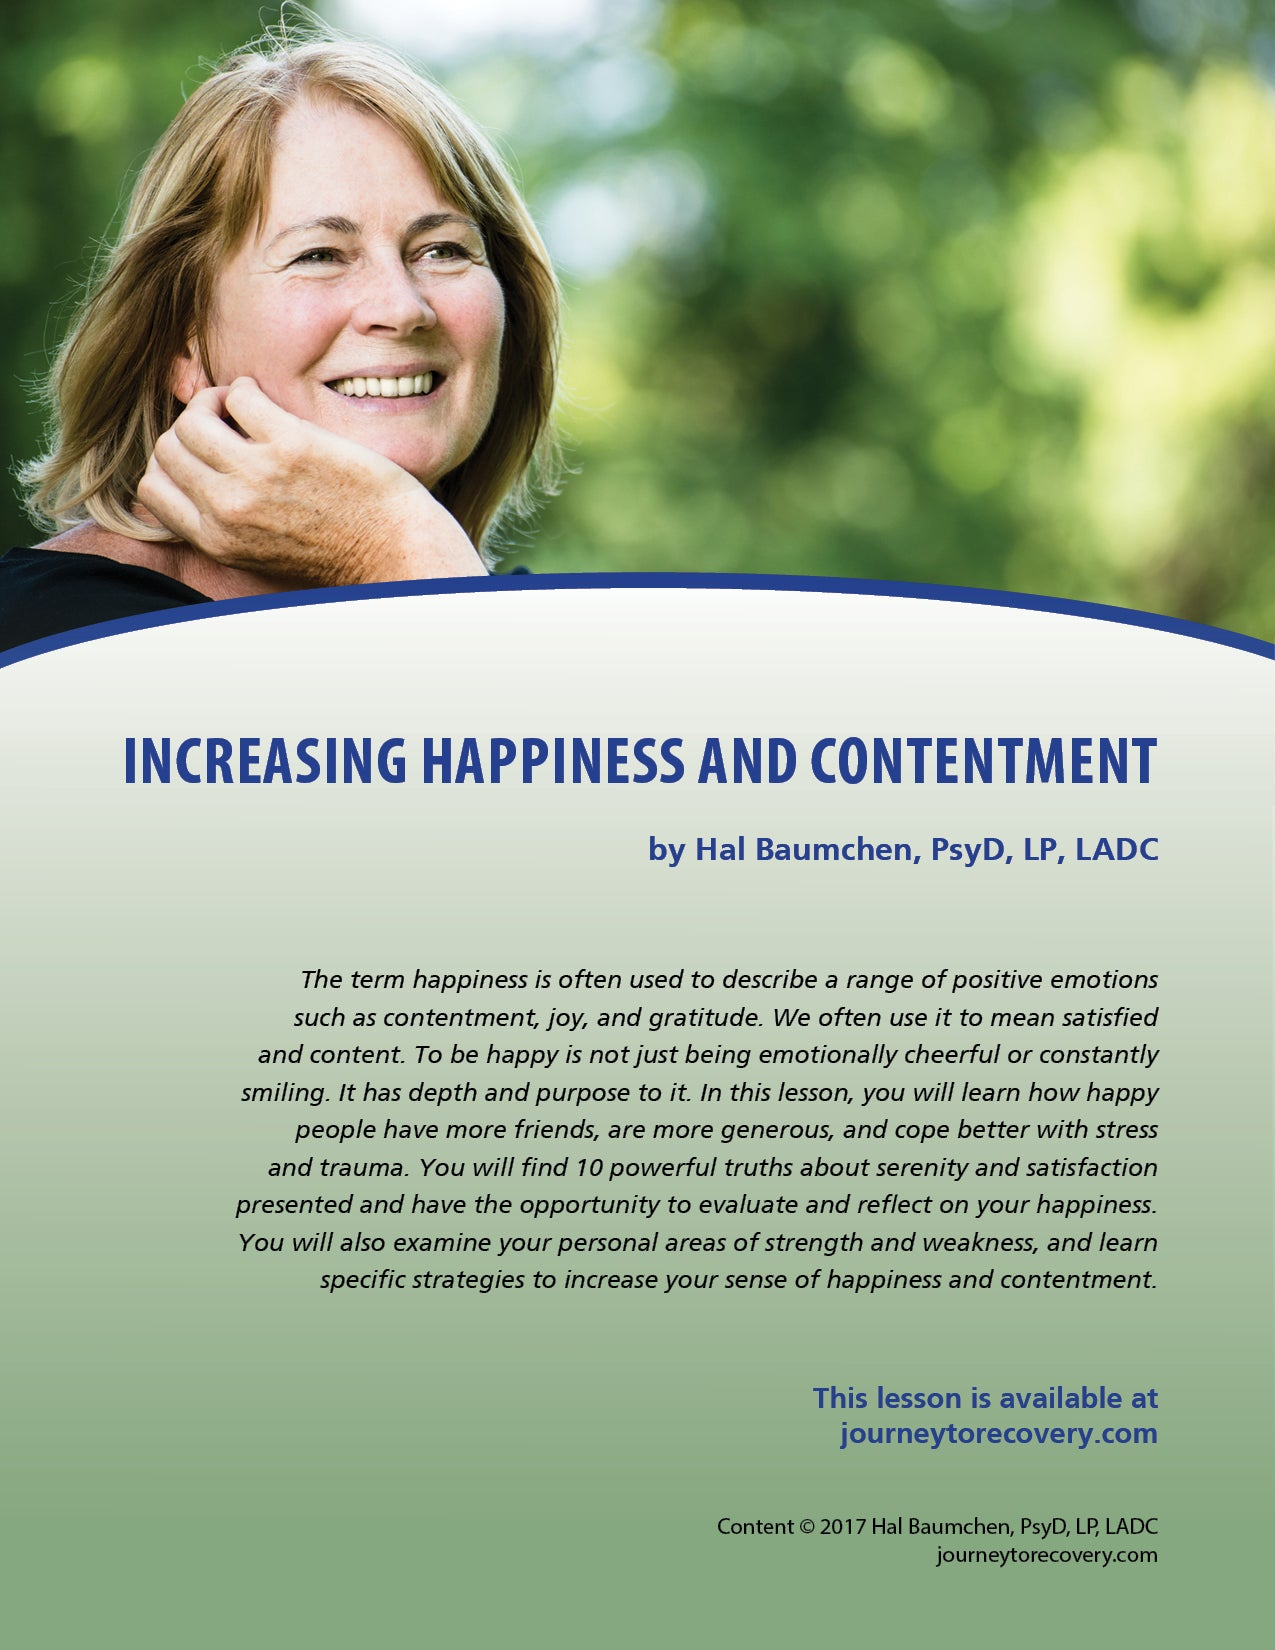 Increasing Happiness and Contentment